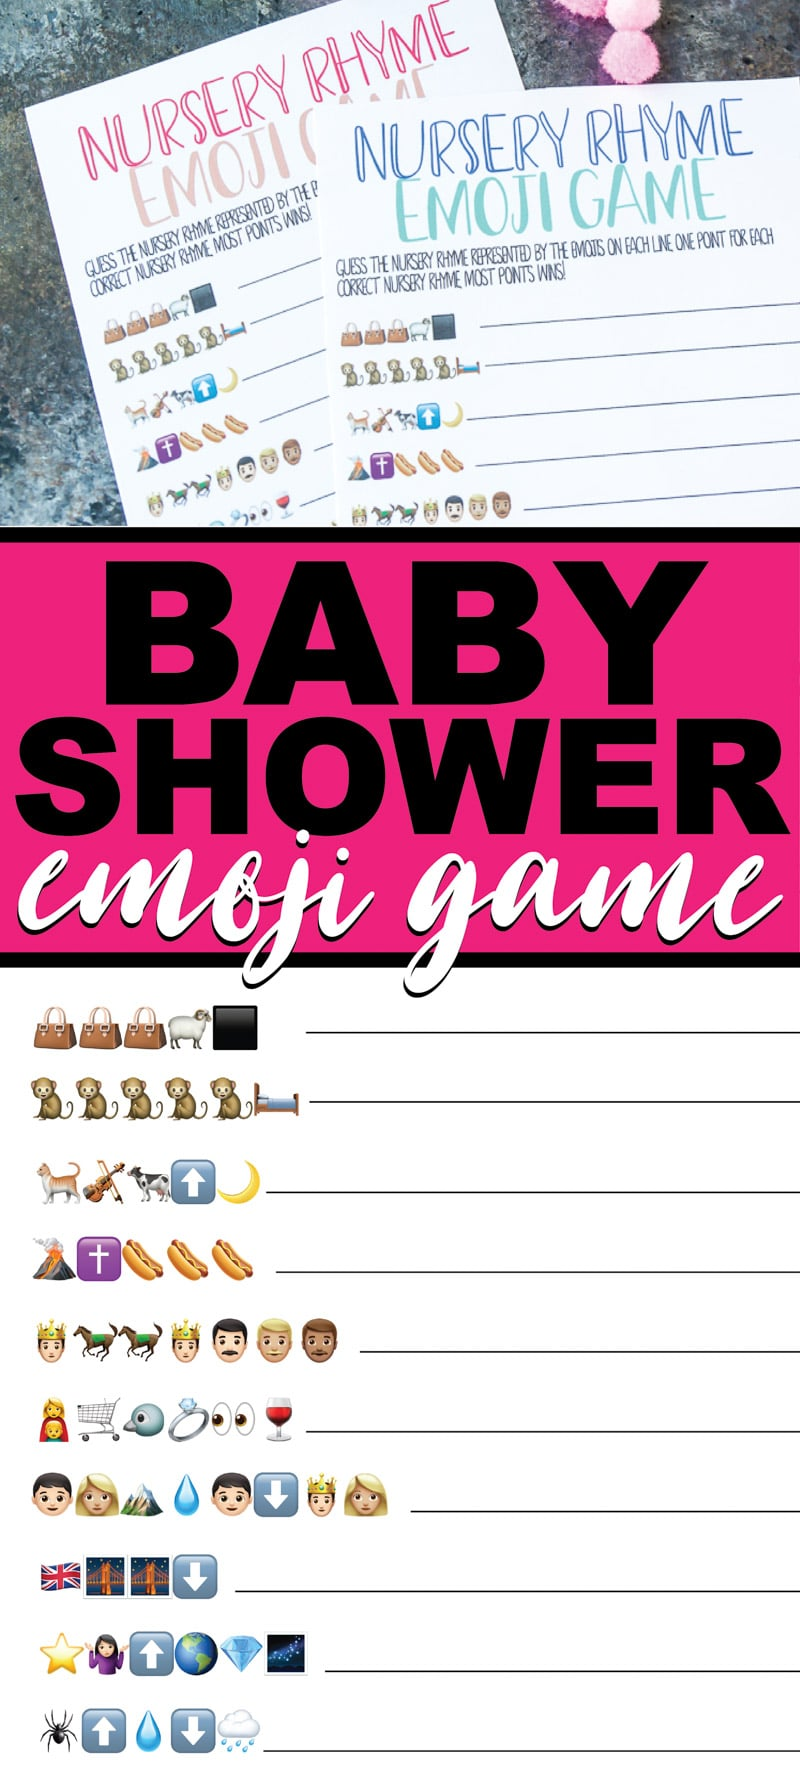 Free printable baby shower emoji games! Perfect for a baby shower party. Great for adults or even for teens at a baby shower!